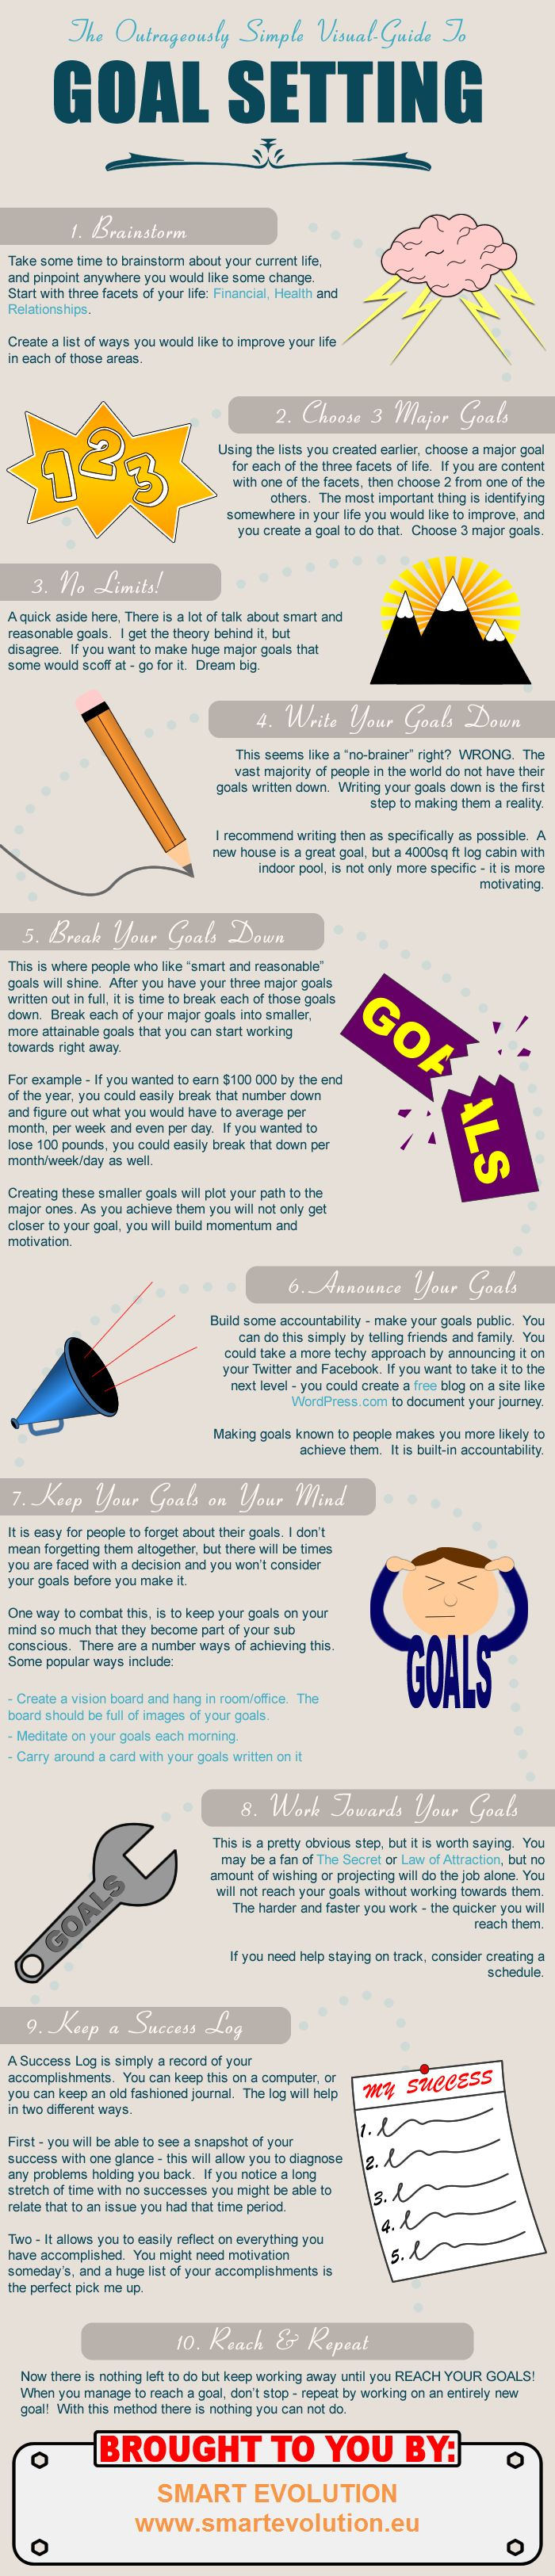 Great 10 step goal setting info graphic. The MyGoalBook app supports you with steps 7 thro 10.